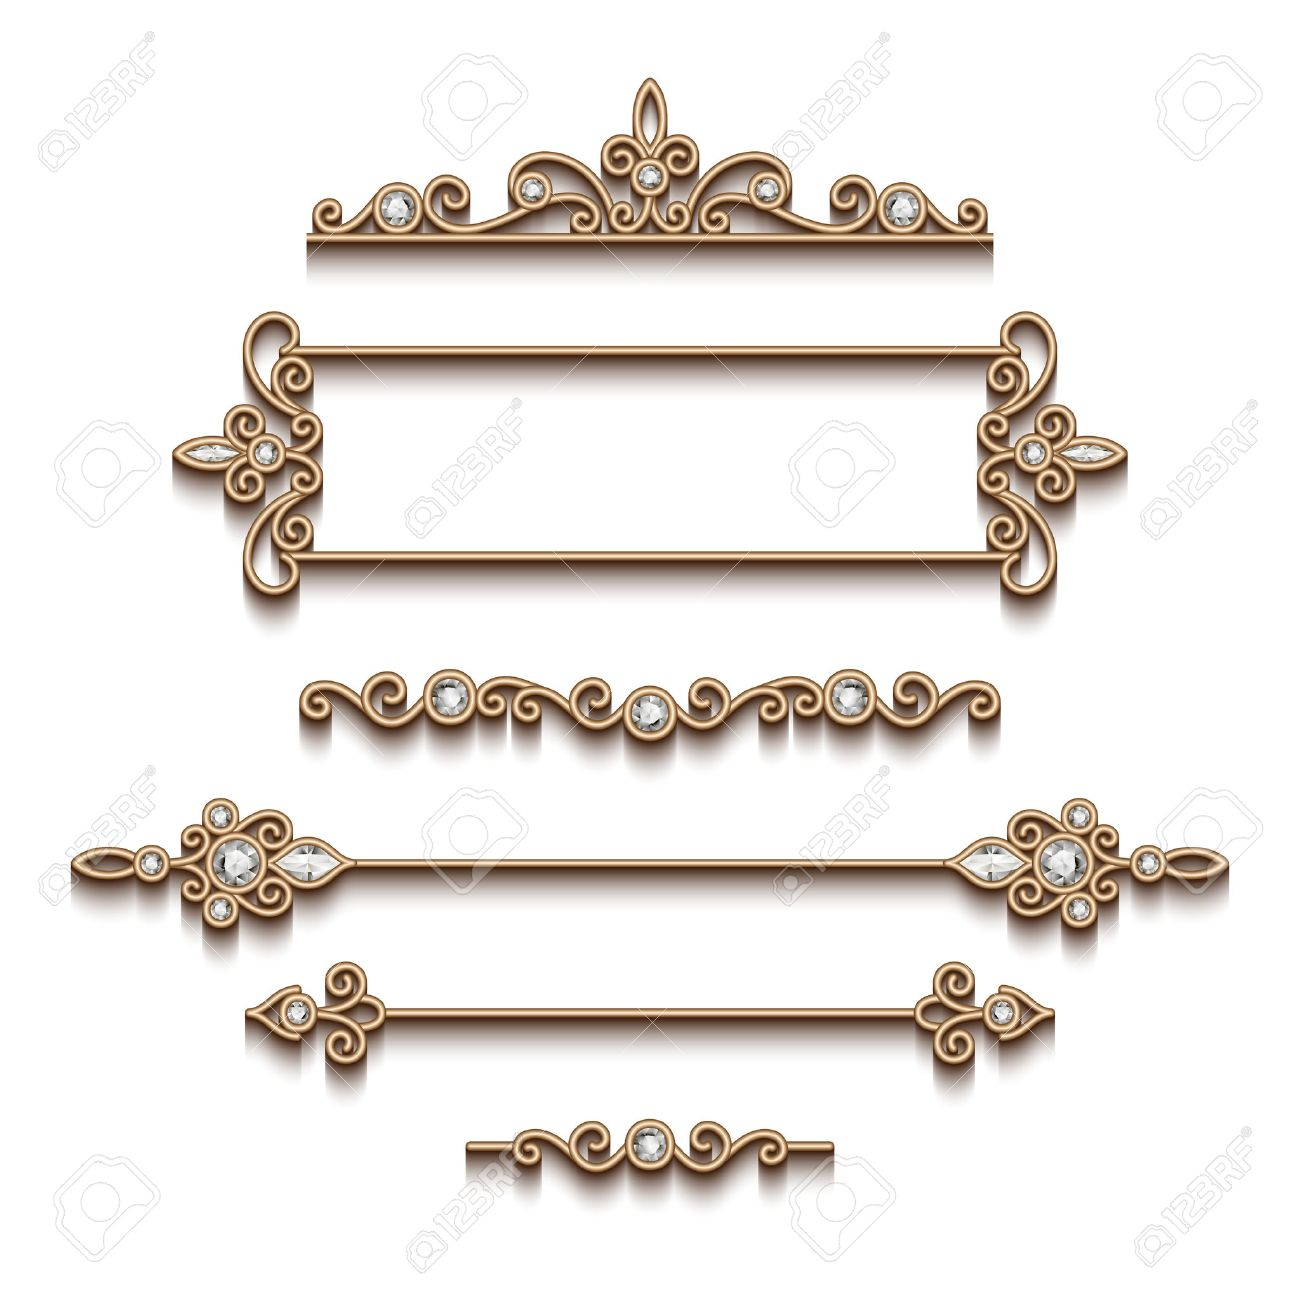 Vintage gold jewelry vignettes and dividers, set of decorative jewellery design elements on white background - 46961067